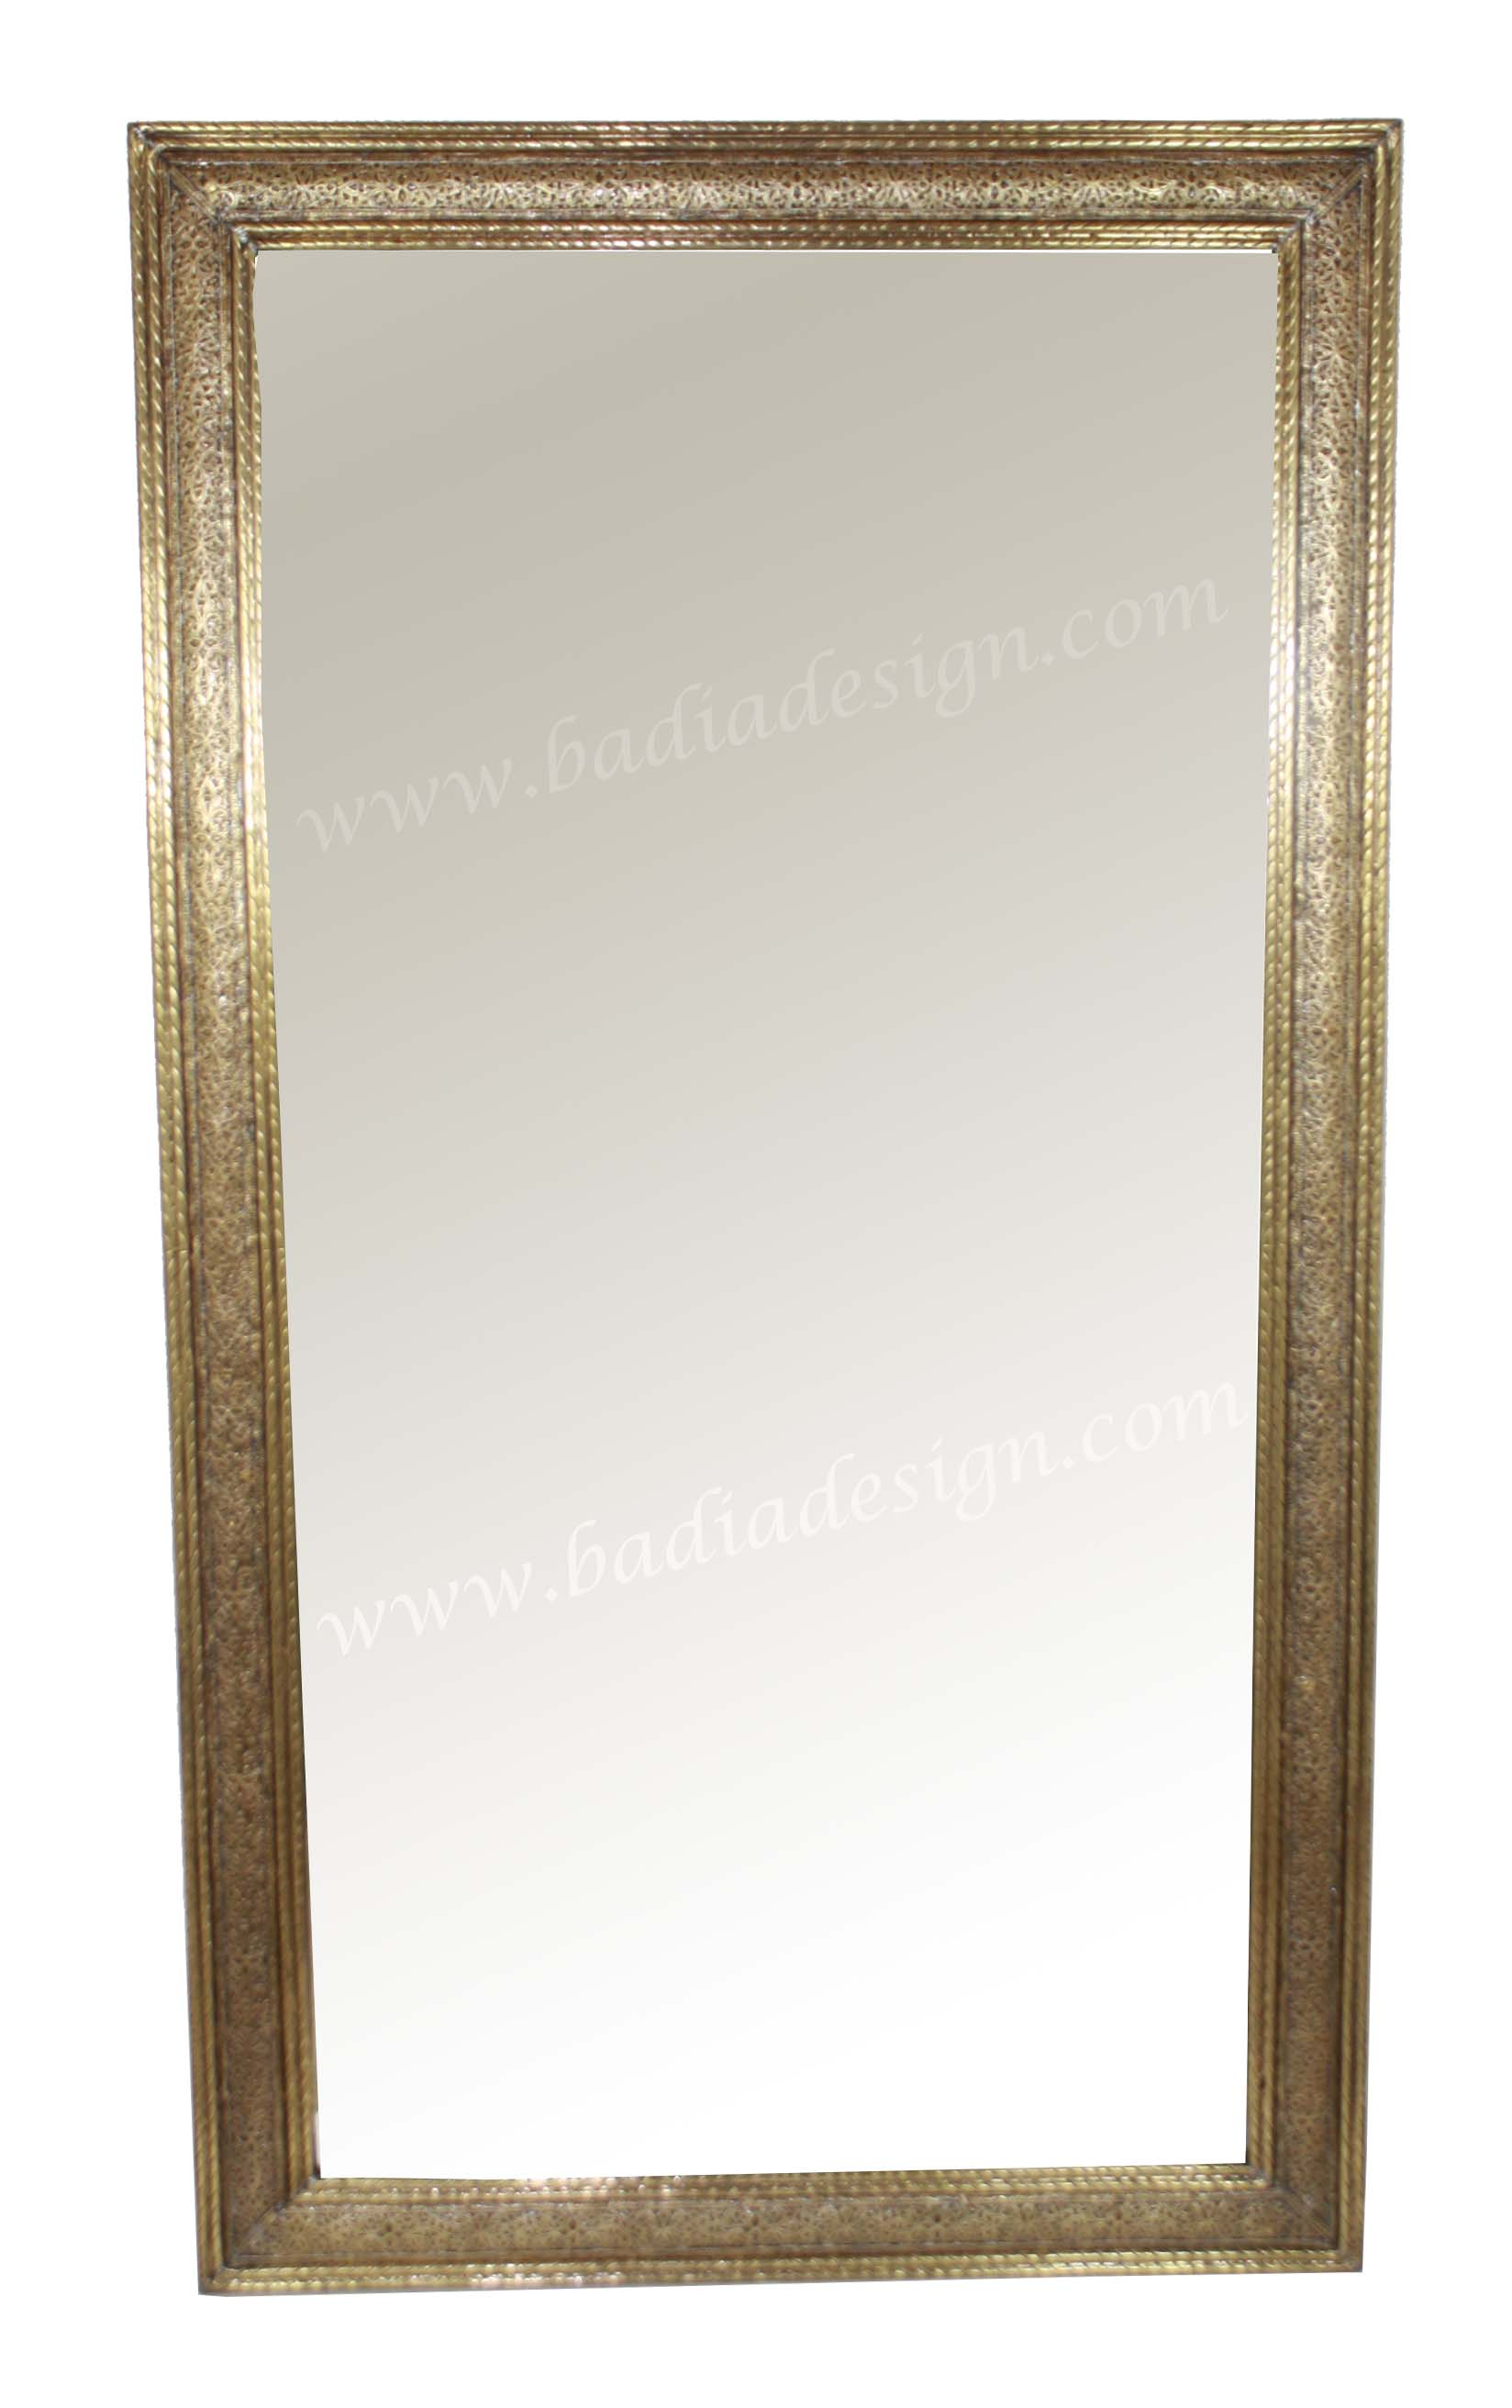 moroccan-rectangular-shaped-brass-frame-mirror-m-em005-1.jpg